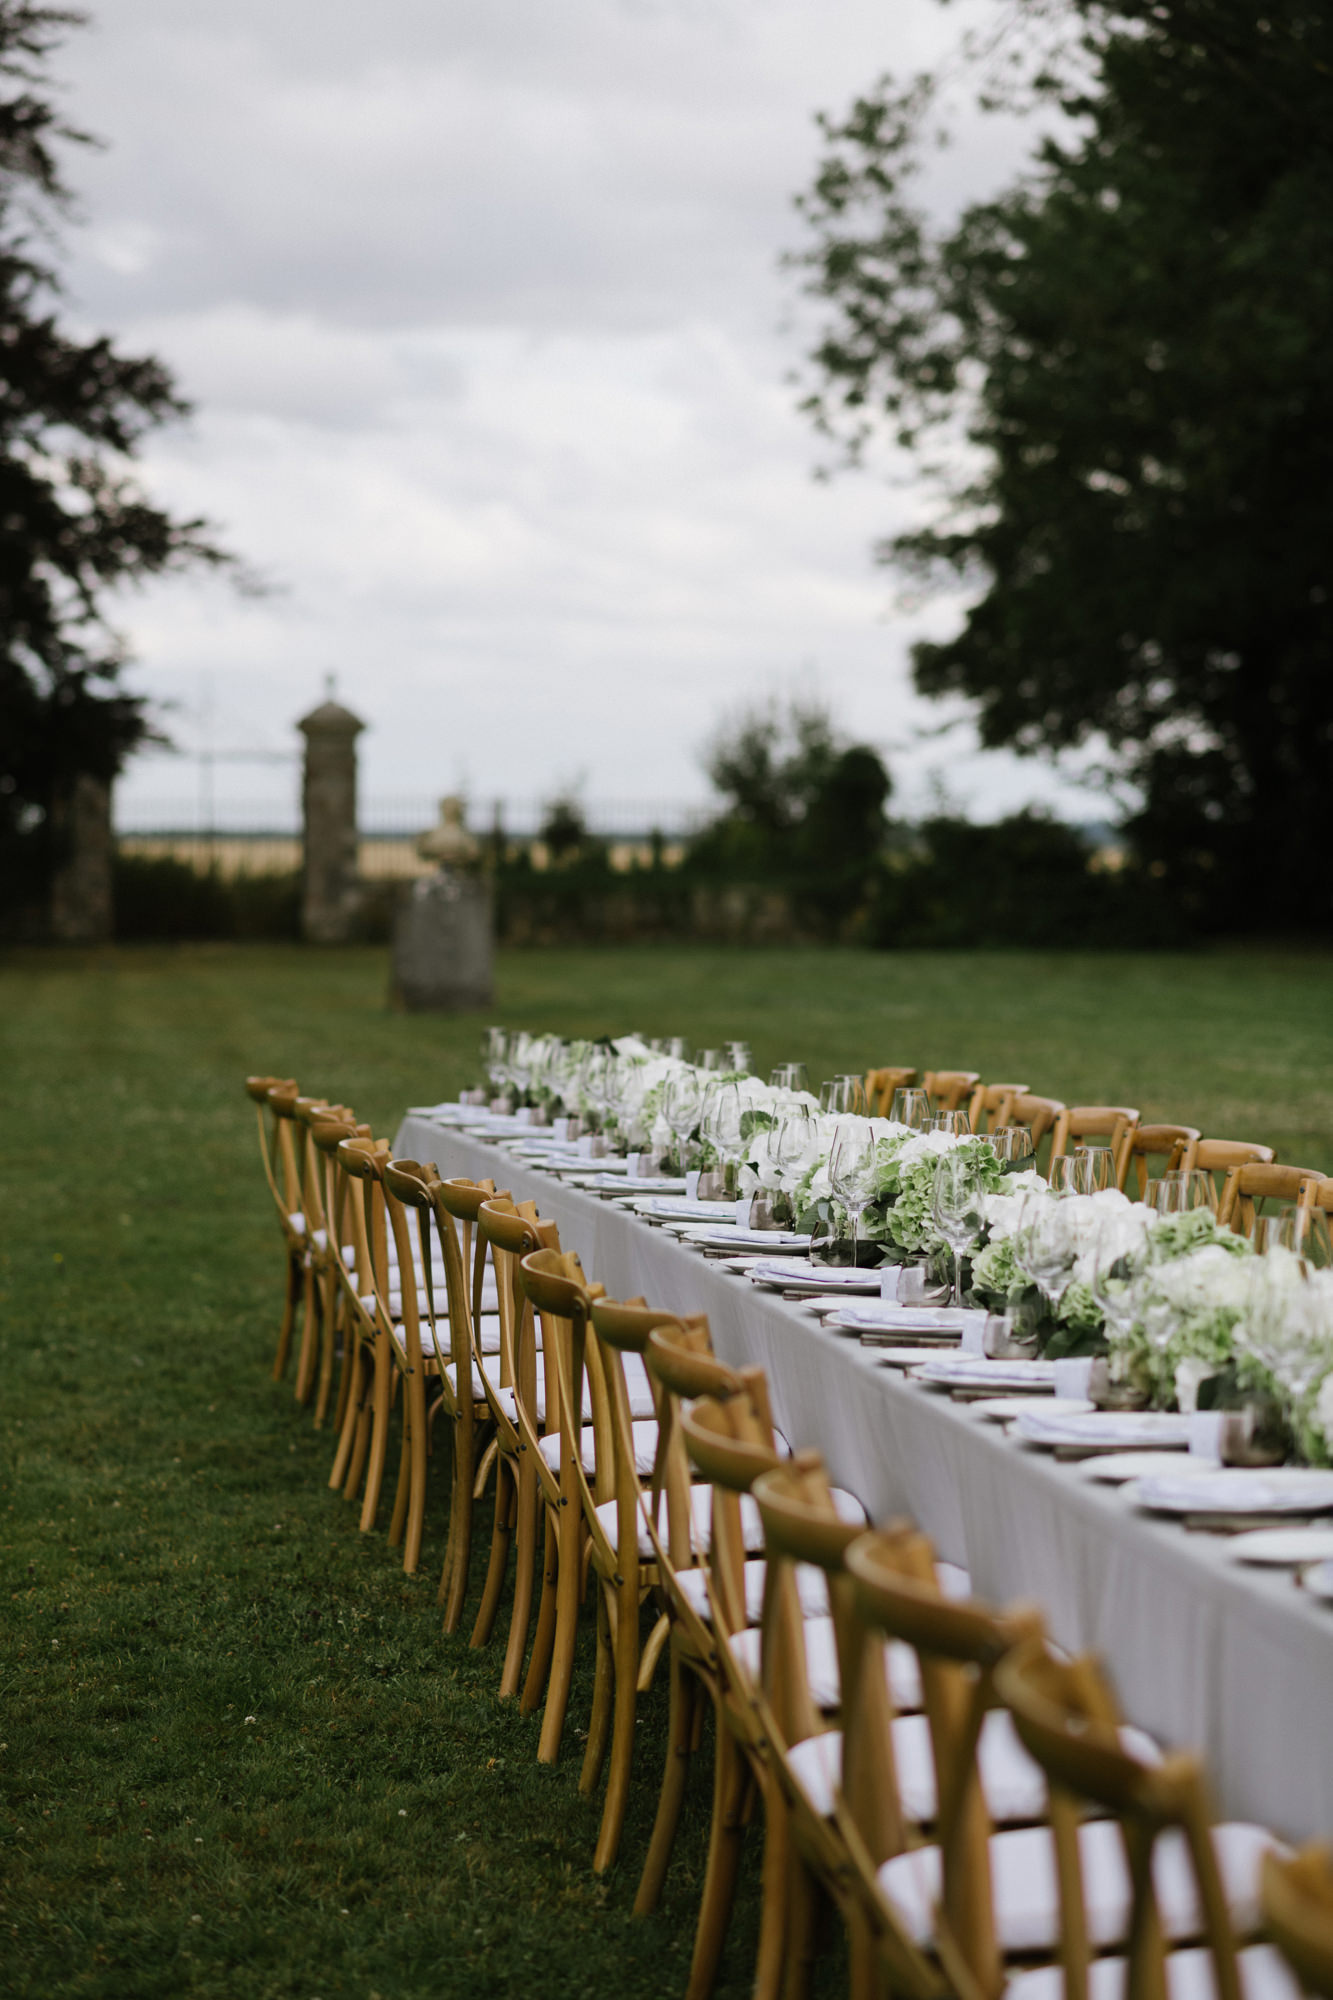 Outdoor reception decor in all white by Thierry Joubert